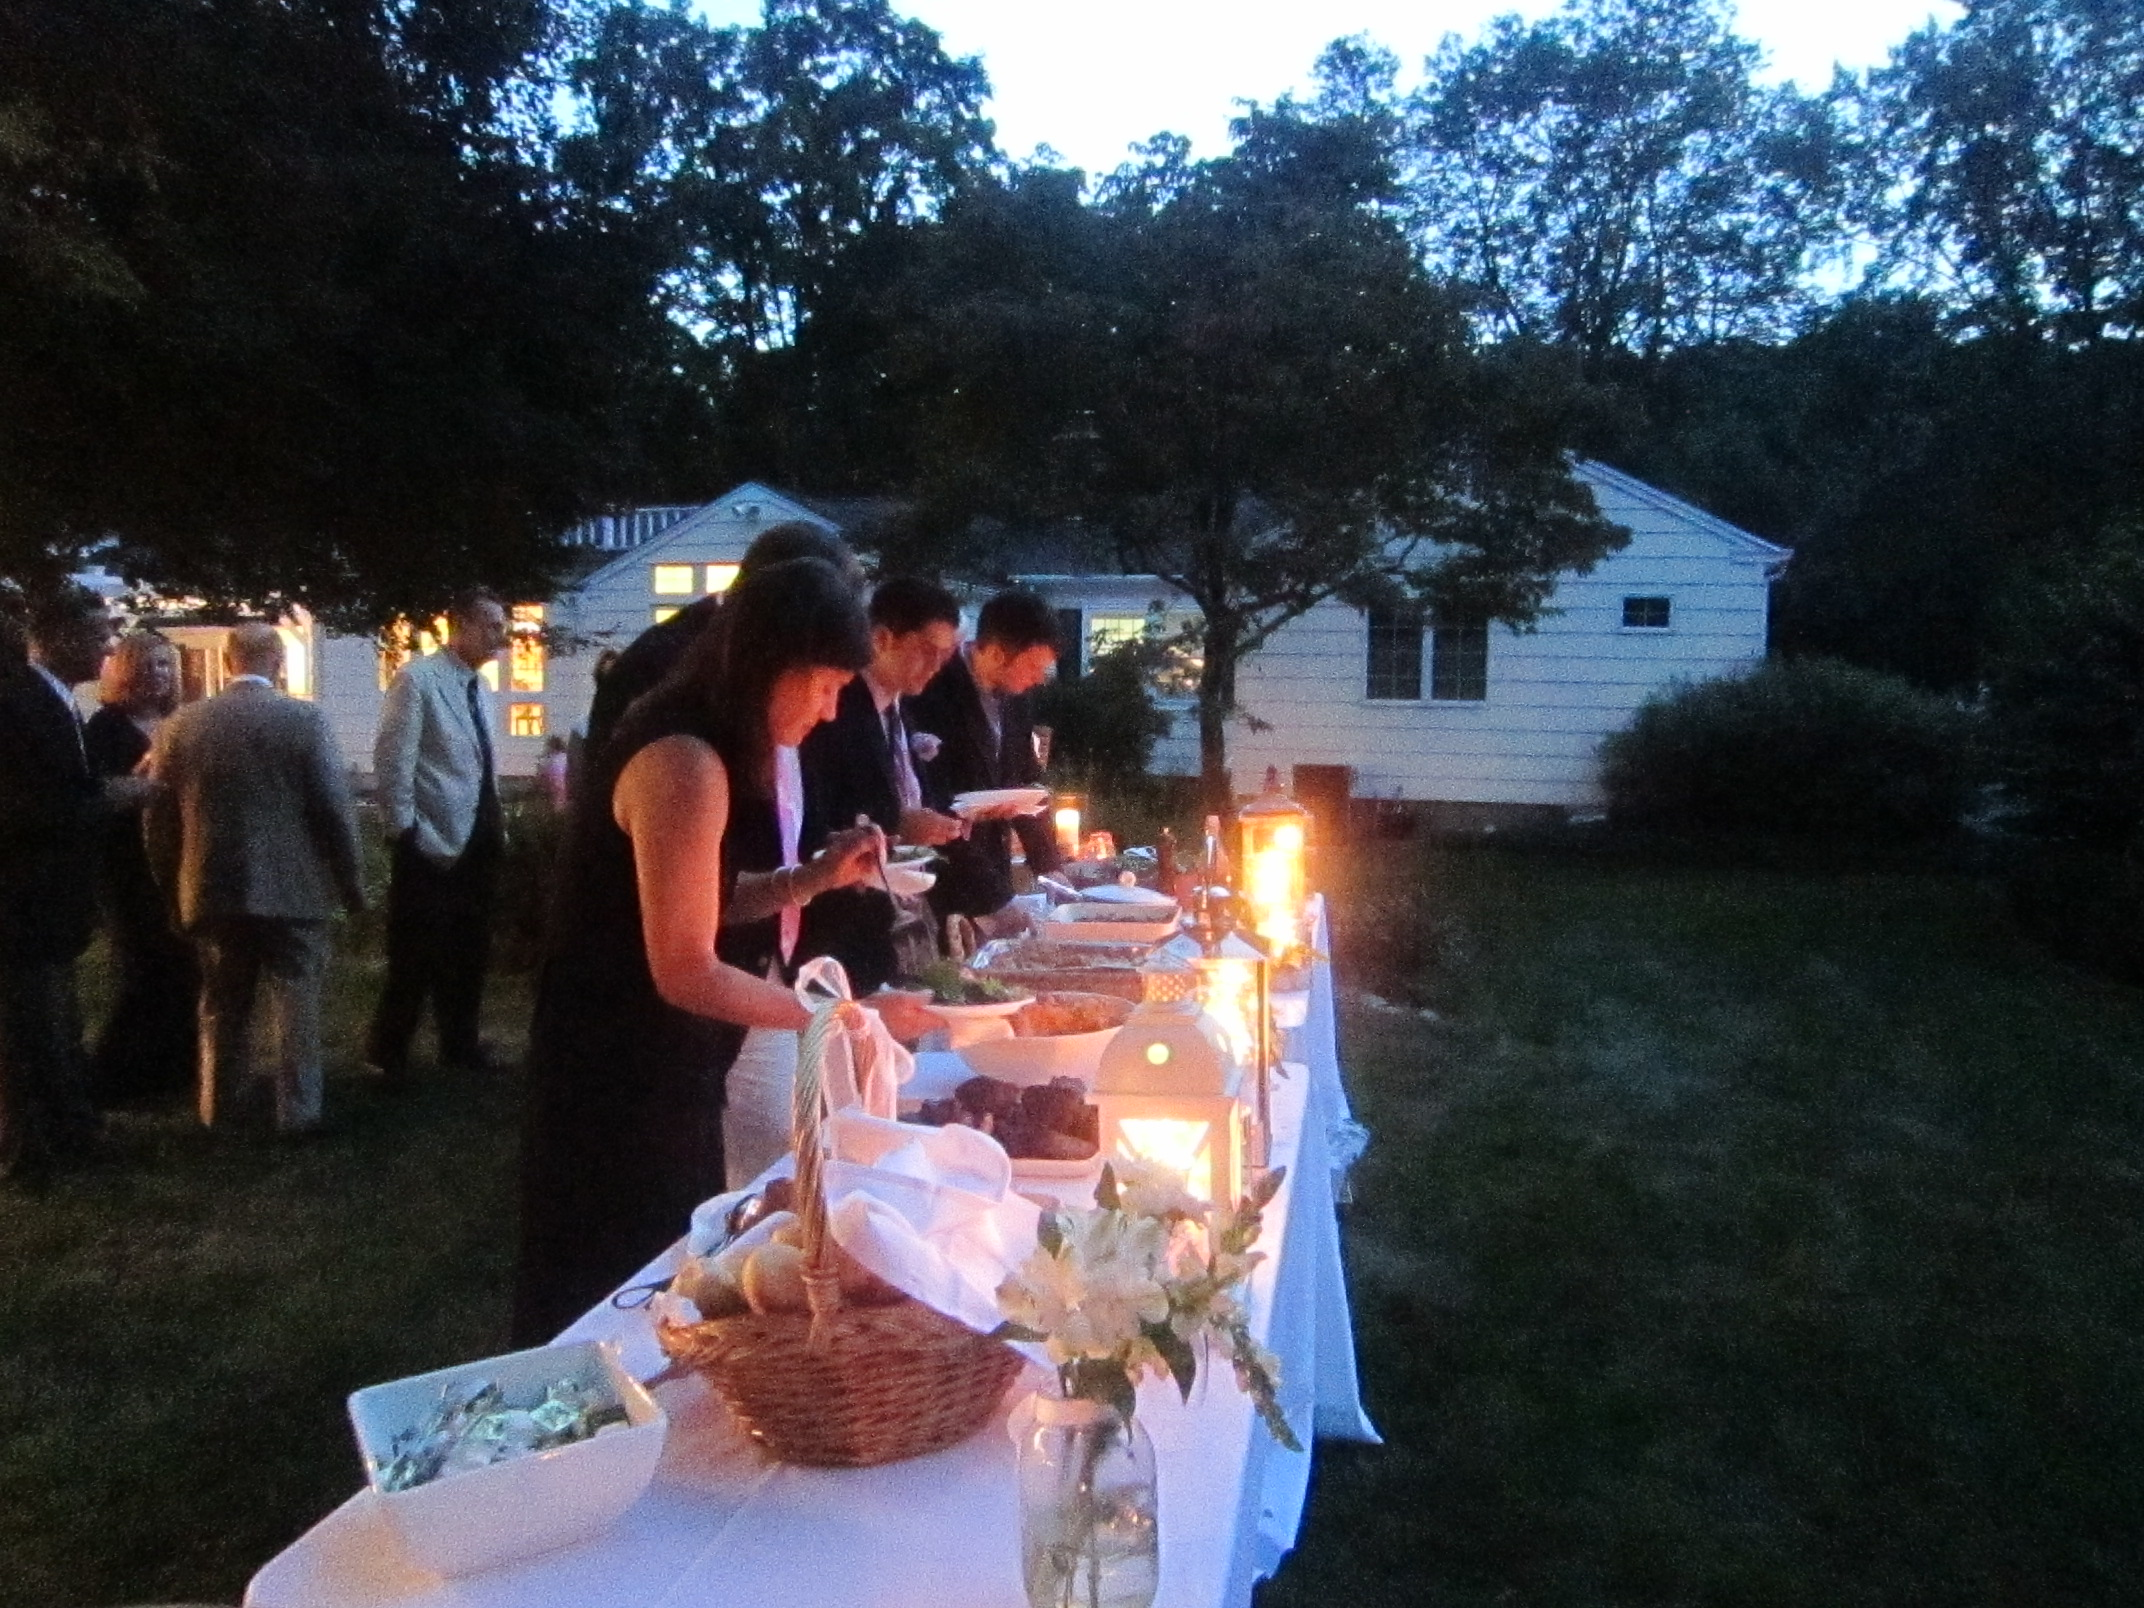 Evening wedding in New Canaan